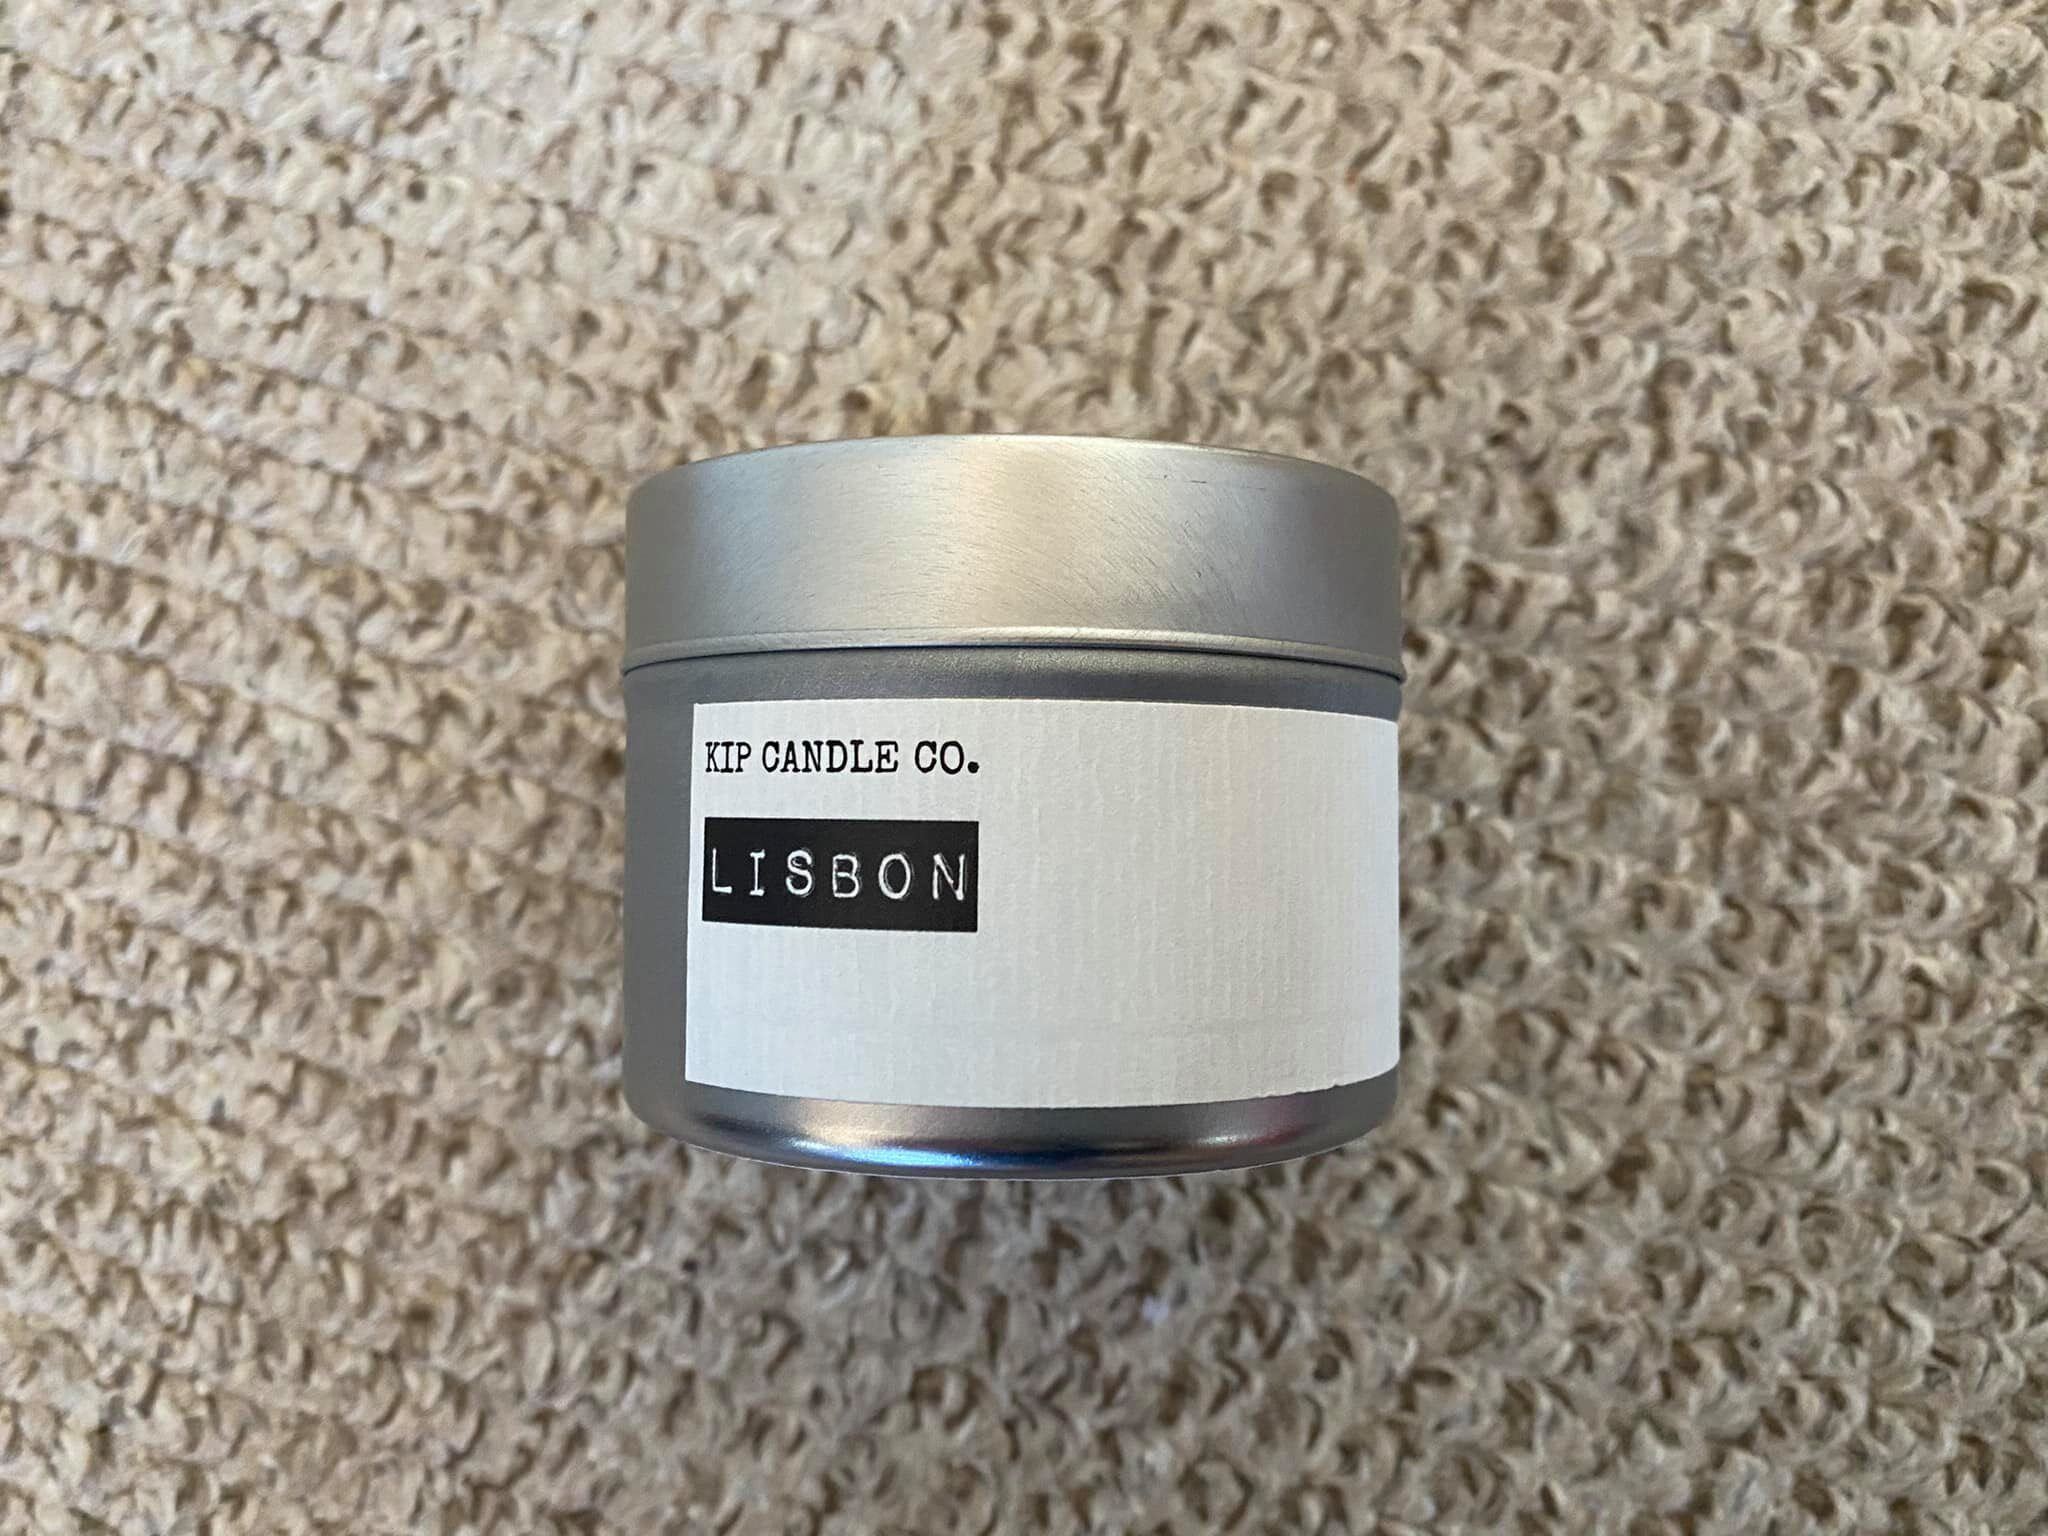 Jet 2 gifted Lisbon scented candle